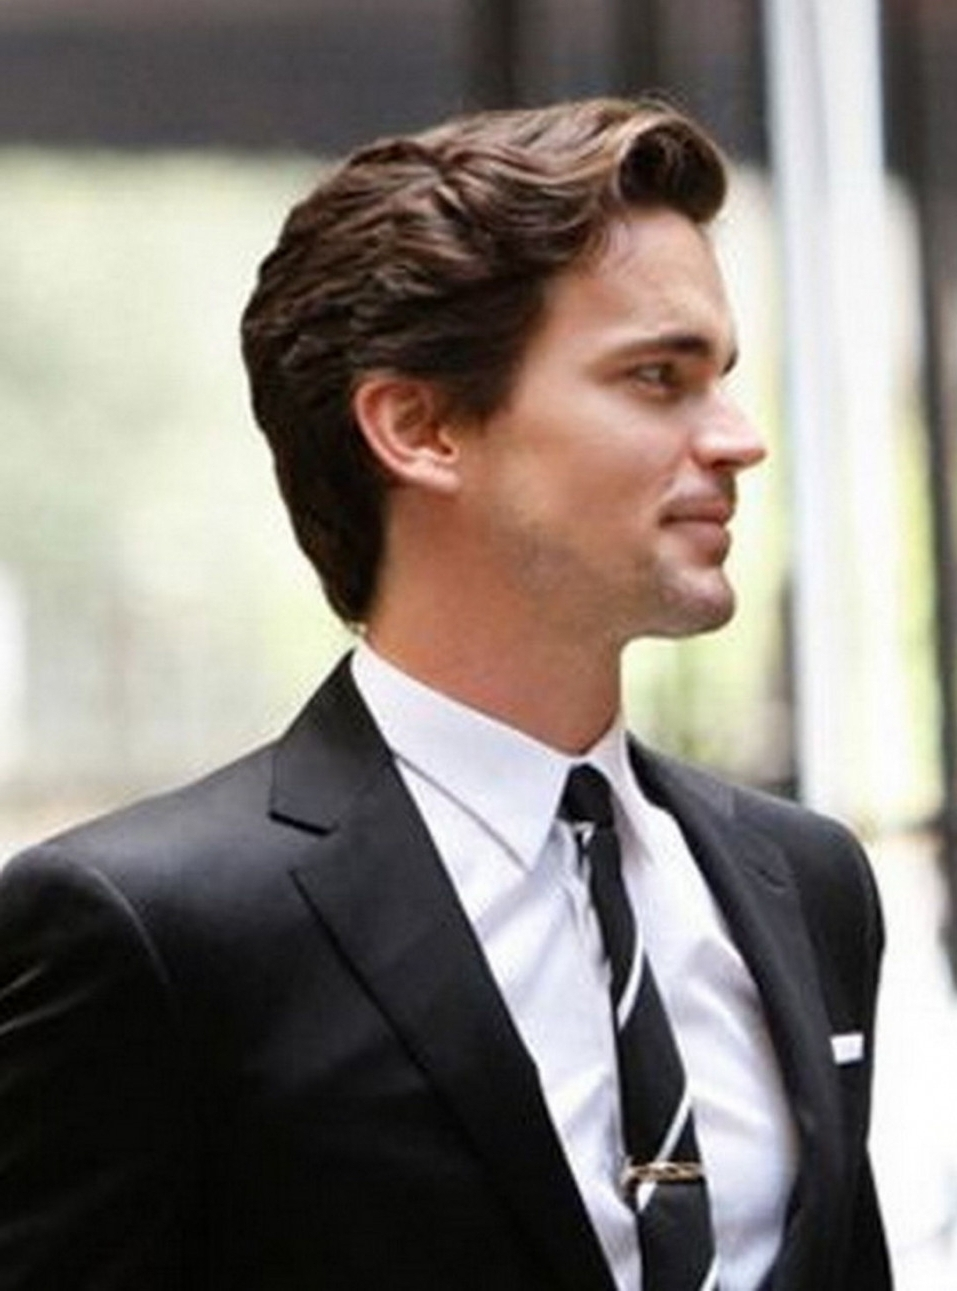 Wedding Hair : Men Wedding Hair For The Bride Instagram Photos Men Intended For Well Liked Wedding Hairstyles For Mens (View 14 of 15)